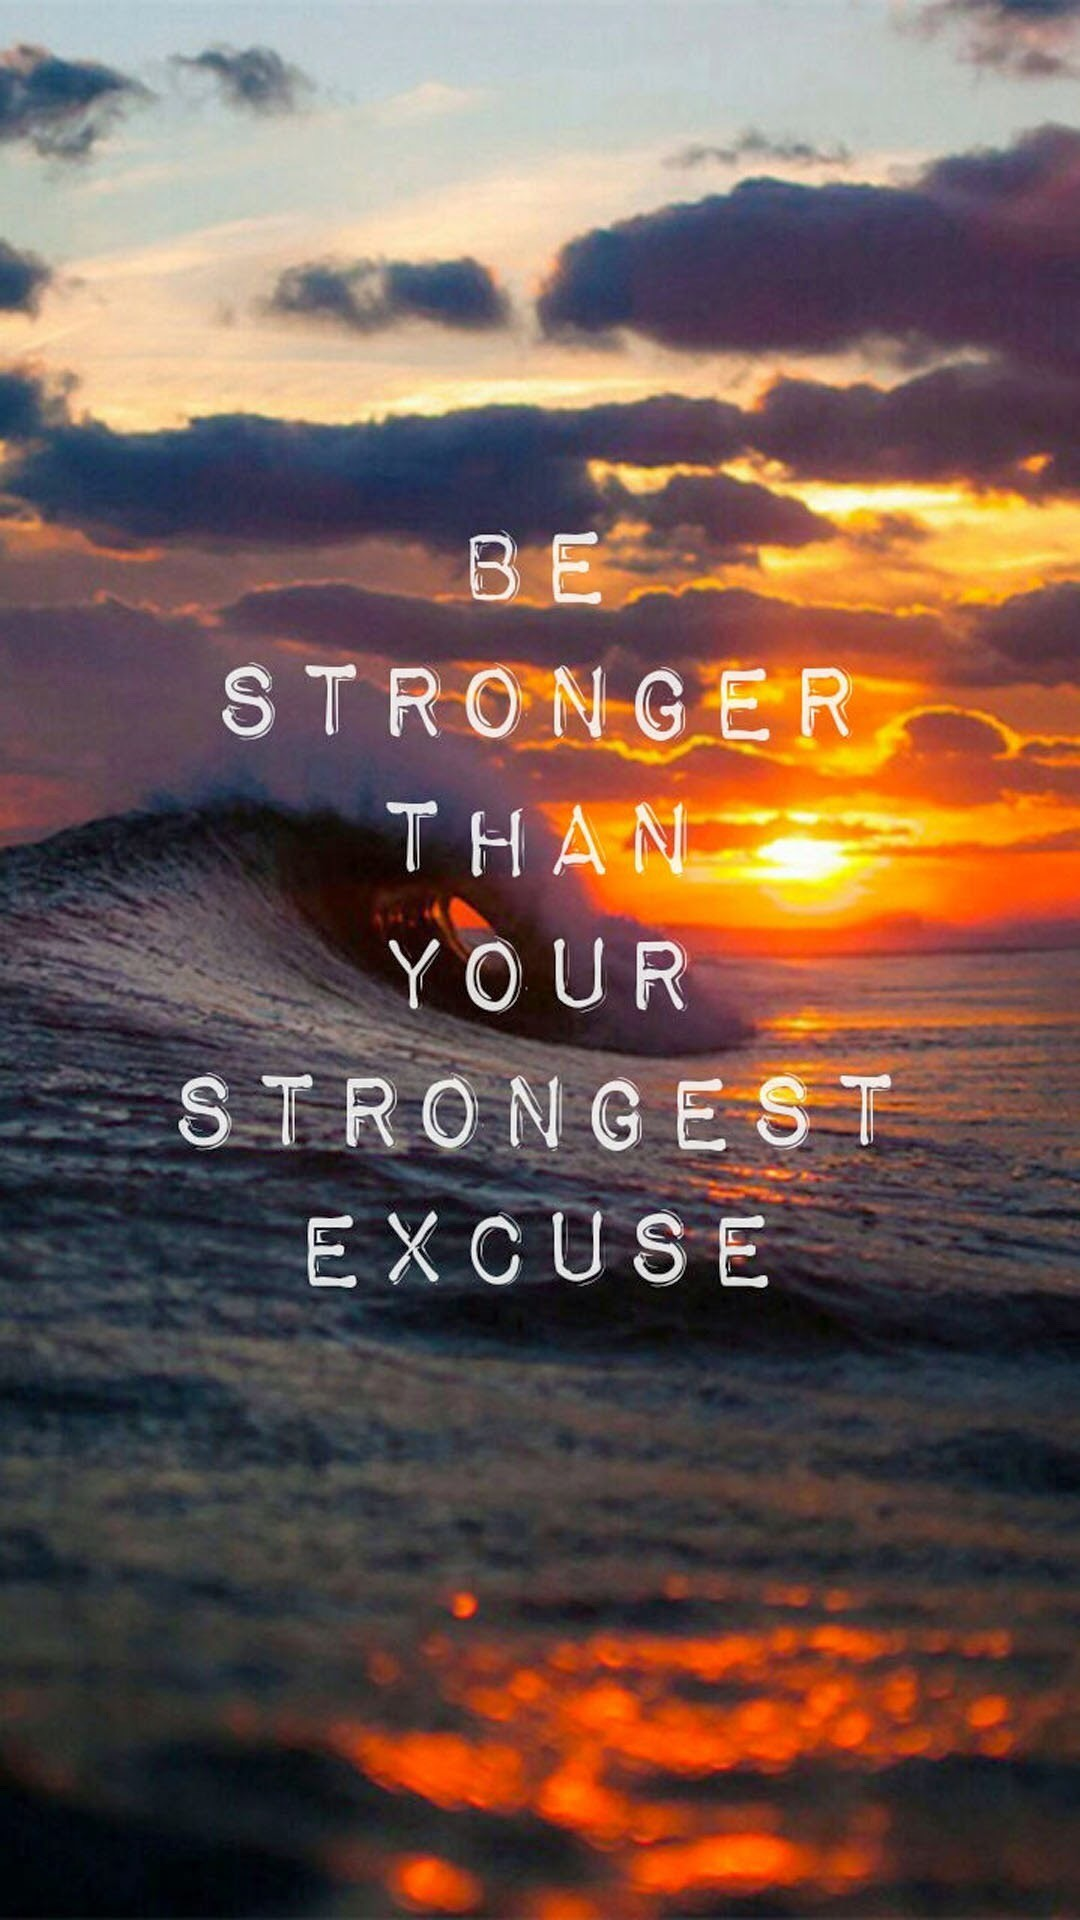 inspirational iphone 6 wallpaper 78 images